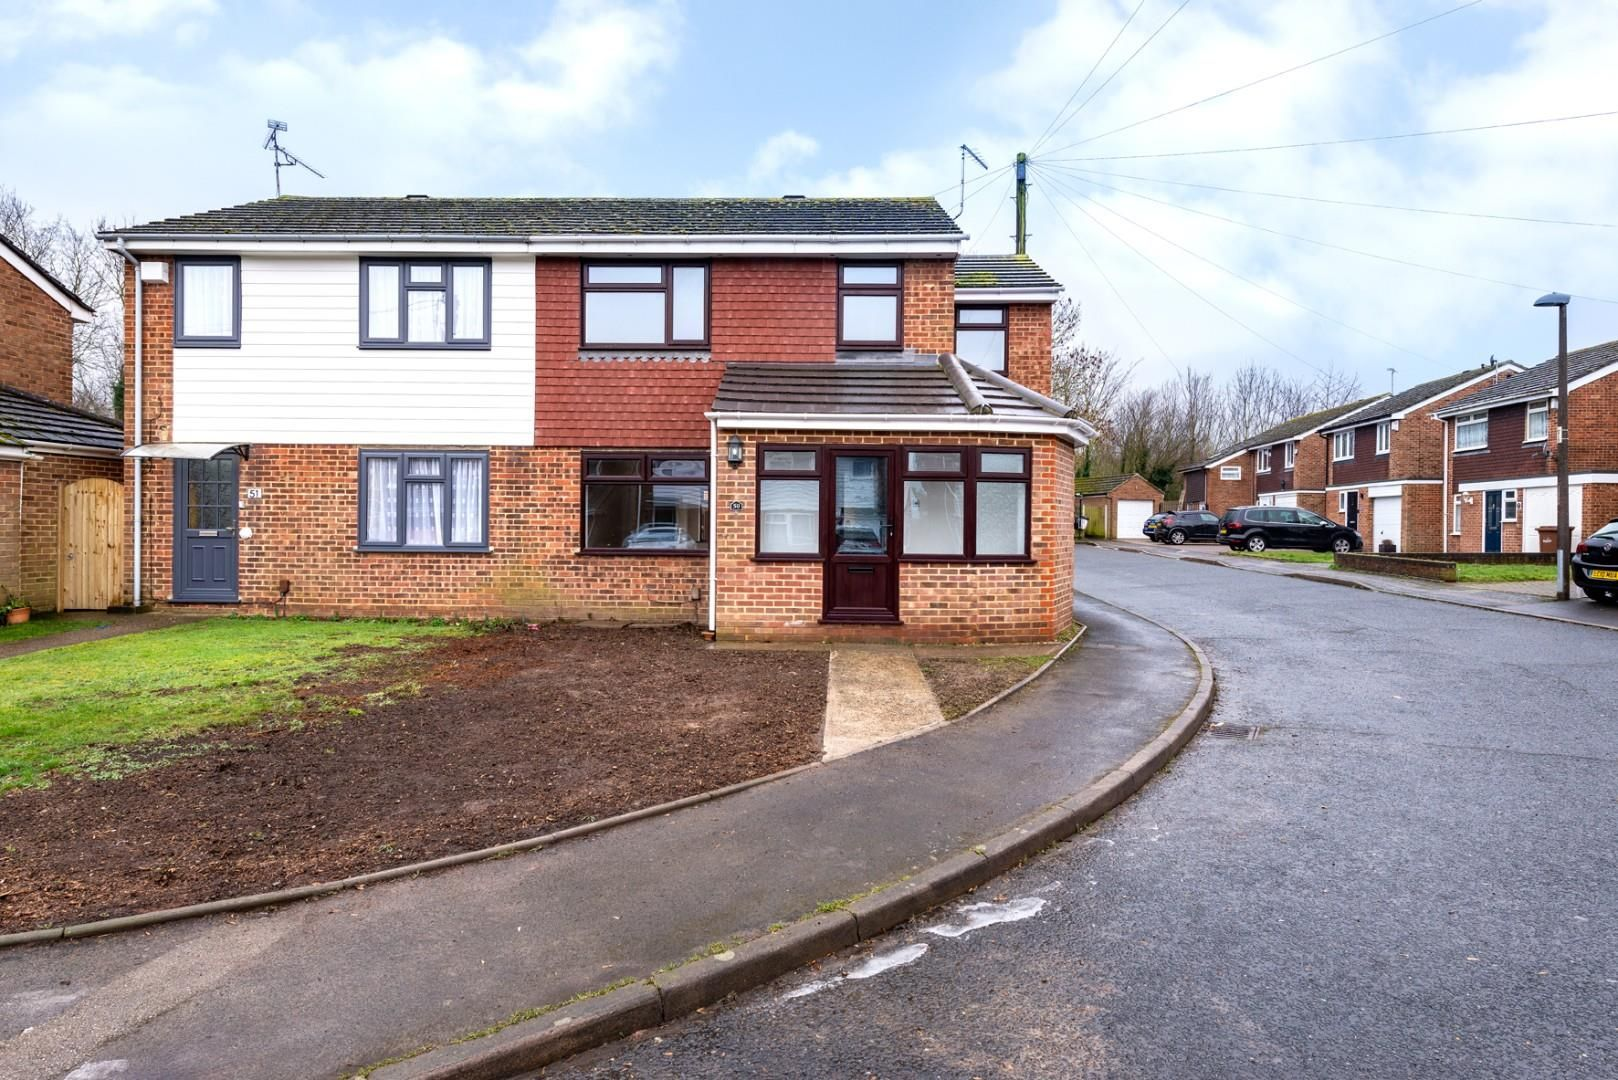 Property photo 1 of 14. 50 Moor Park Close Main1.Jpg